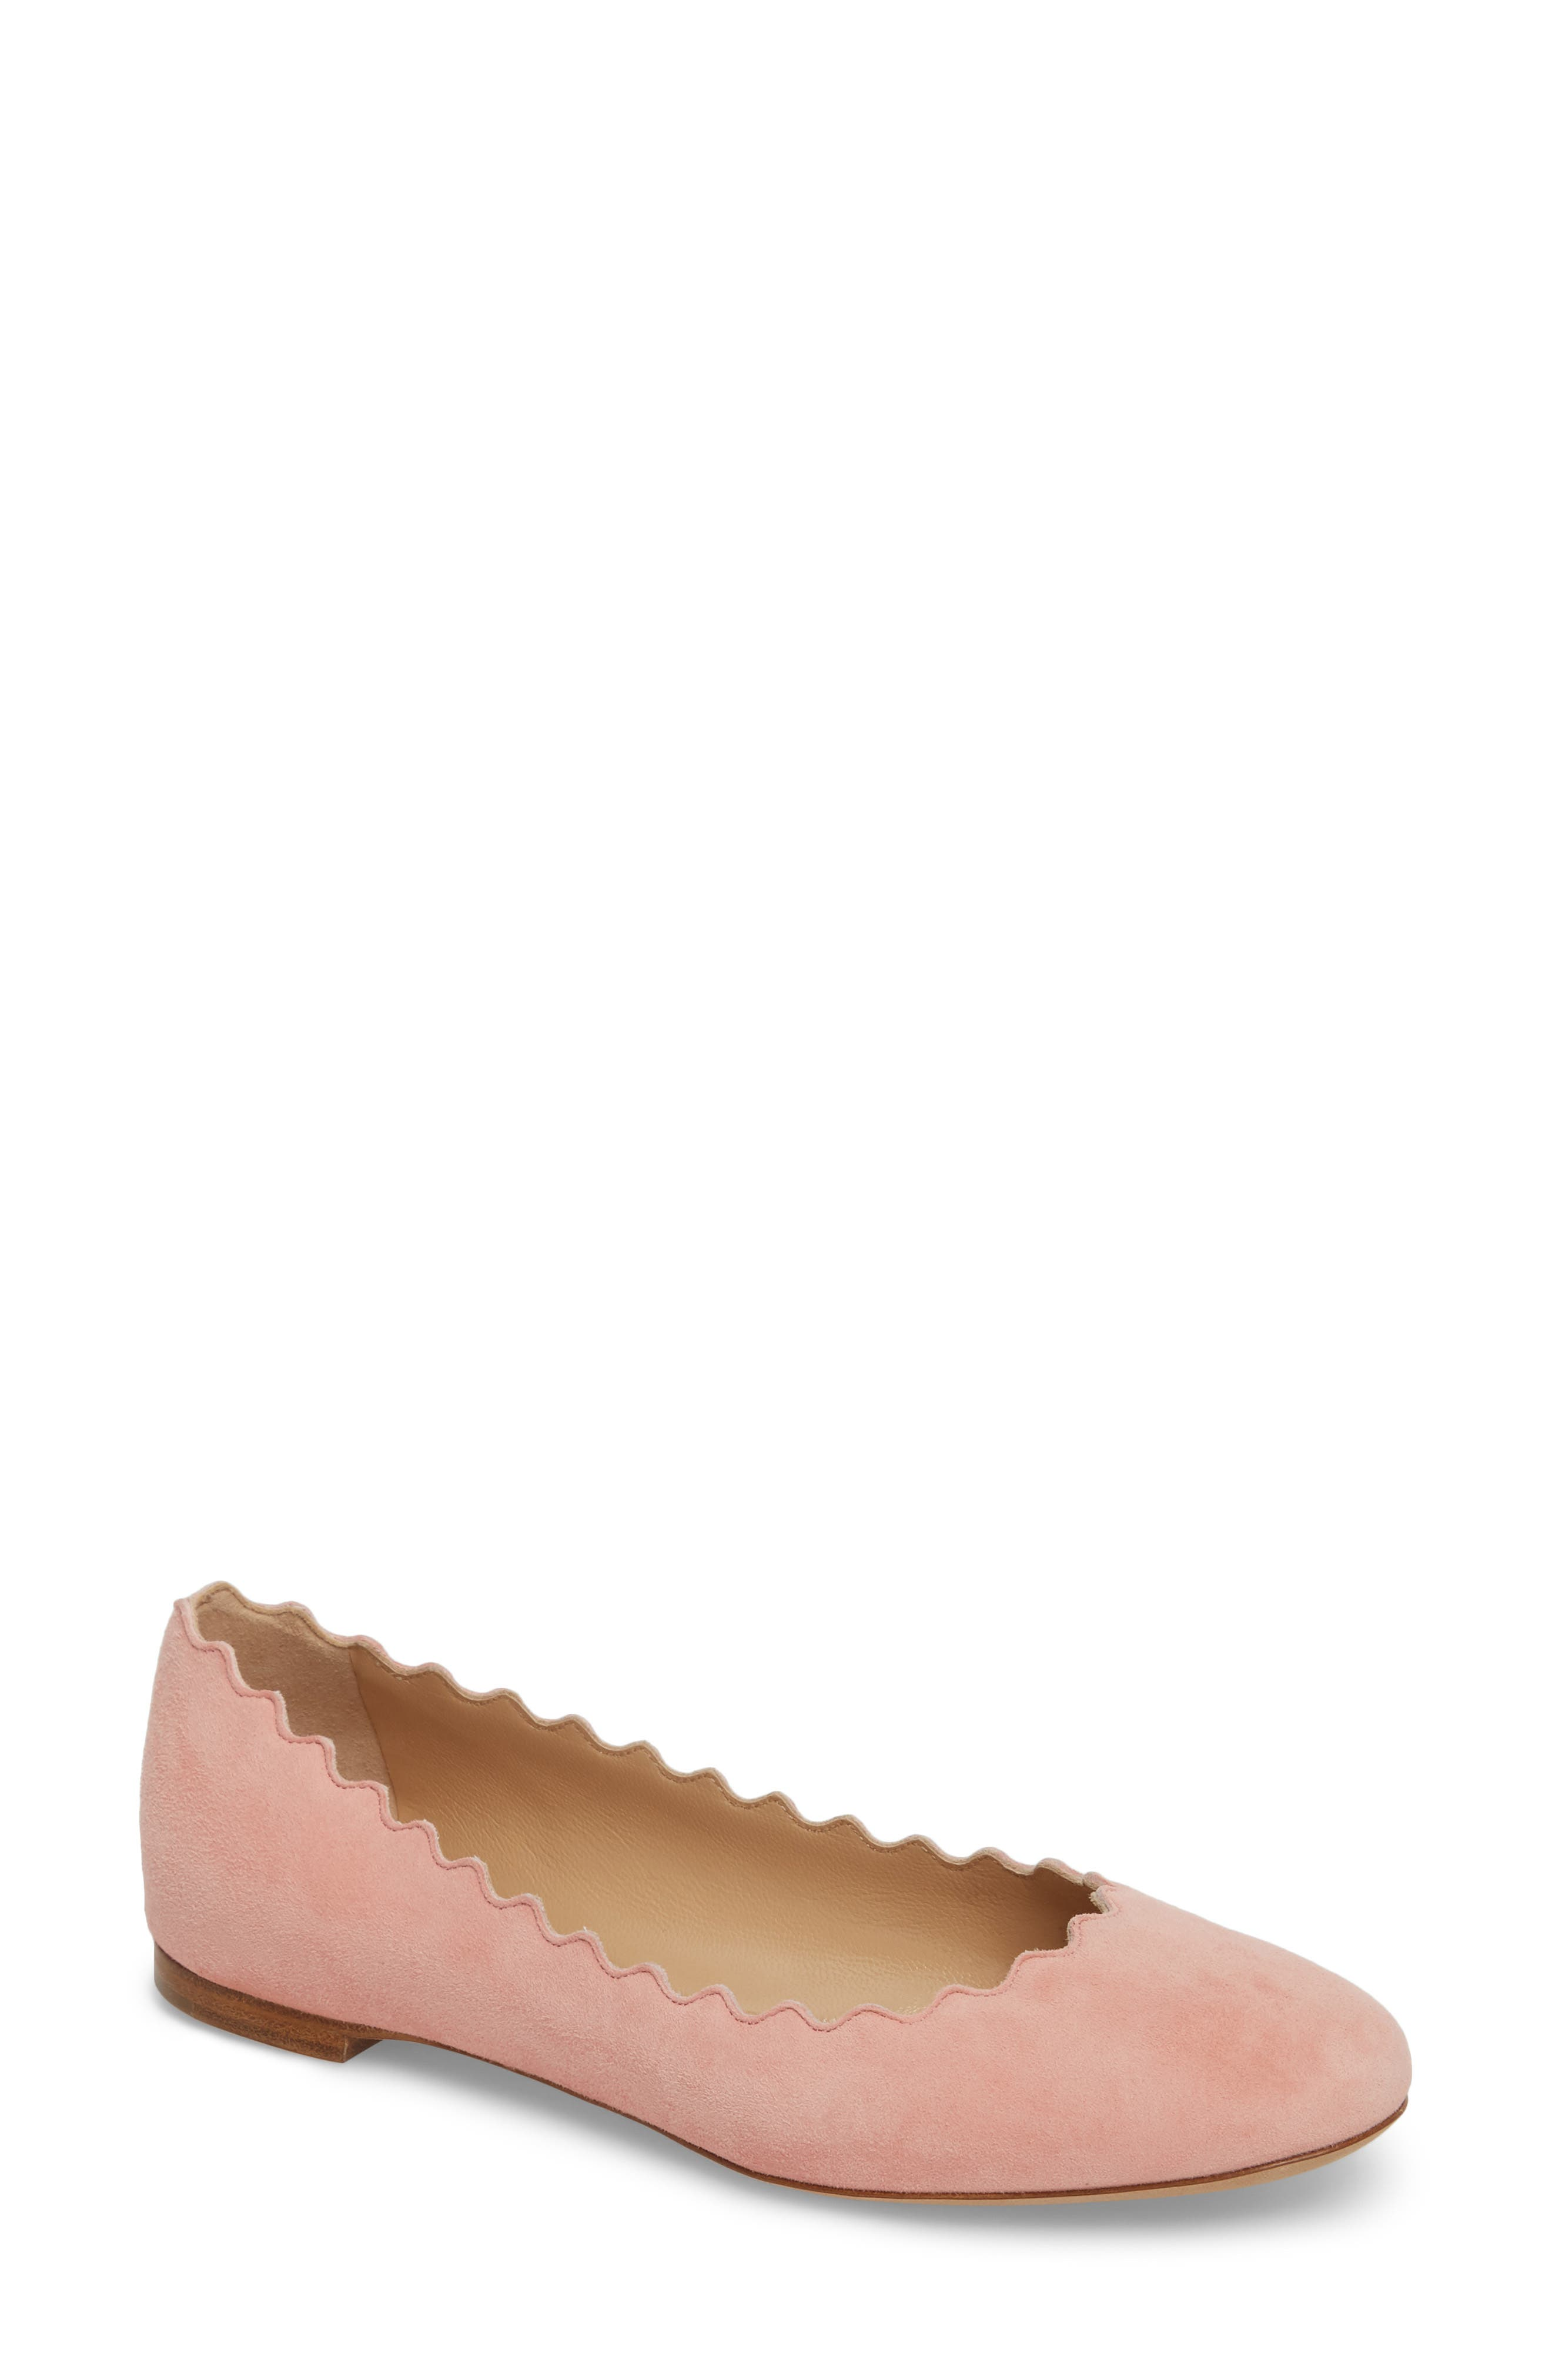 Chloé Loafers & Slippers - Lauren Mules Pink Tea - - Loafers & Slippers for ladies Enjoy Shopping 5PtPr0iw9b